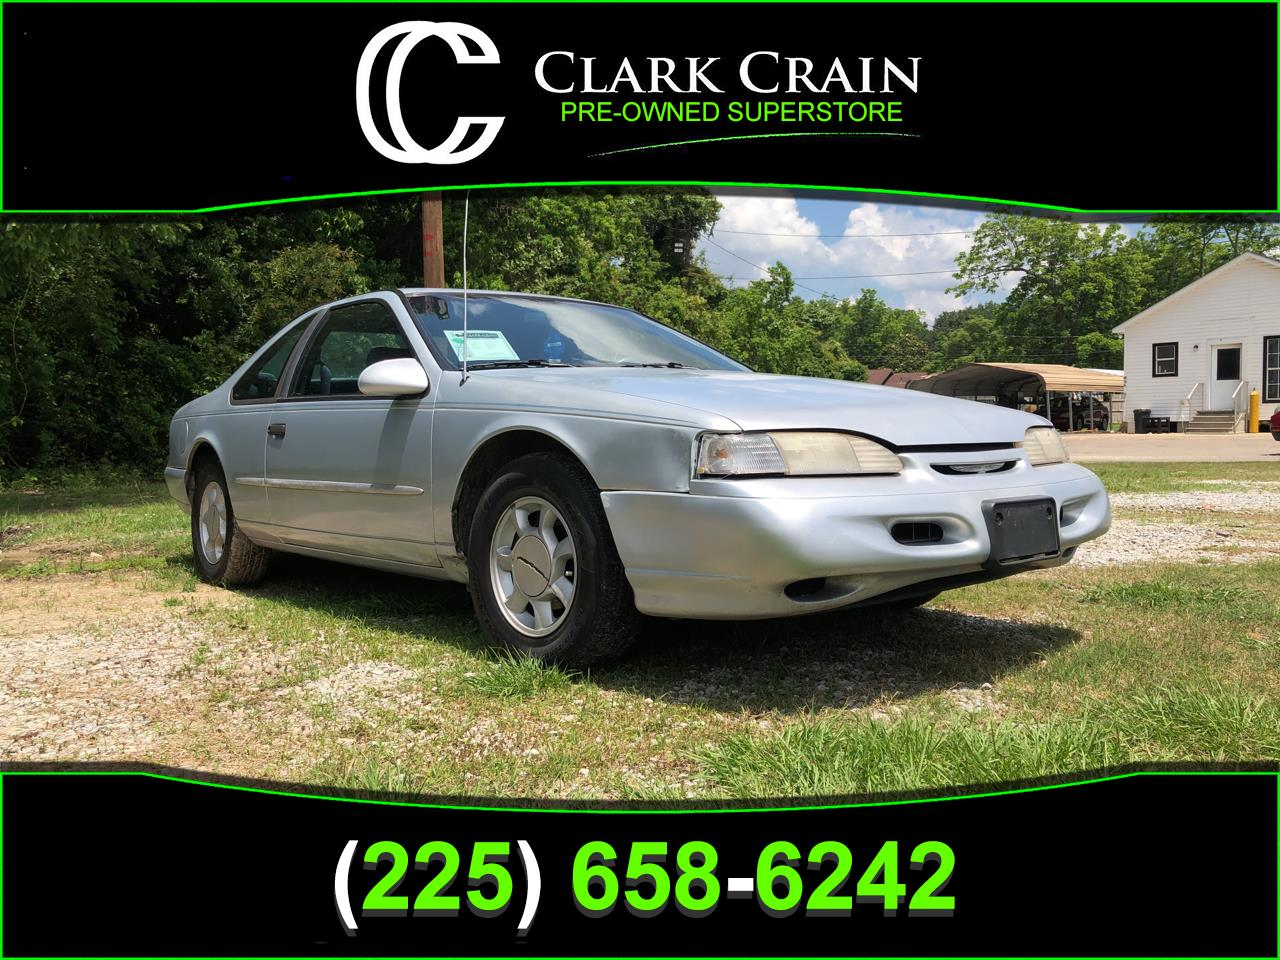 1994 Ford Thunderbird 2dr Coupe LX